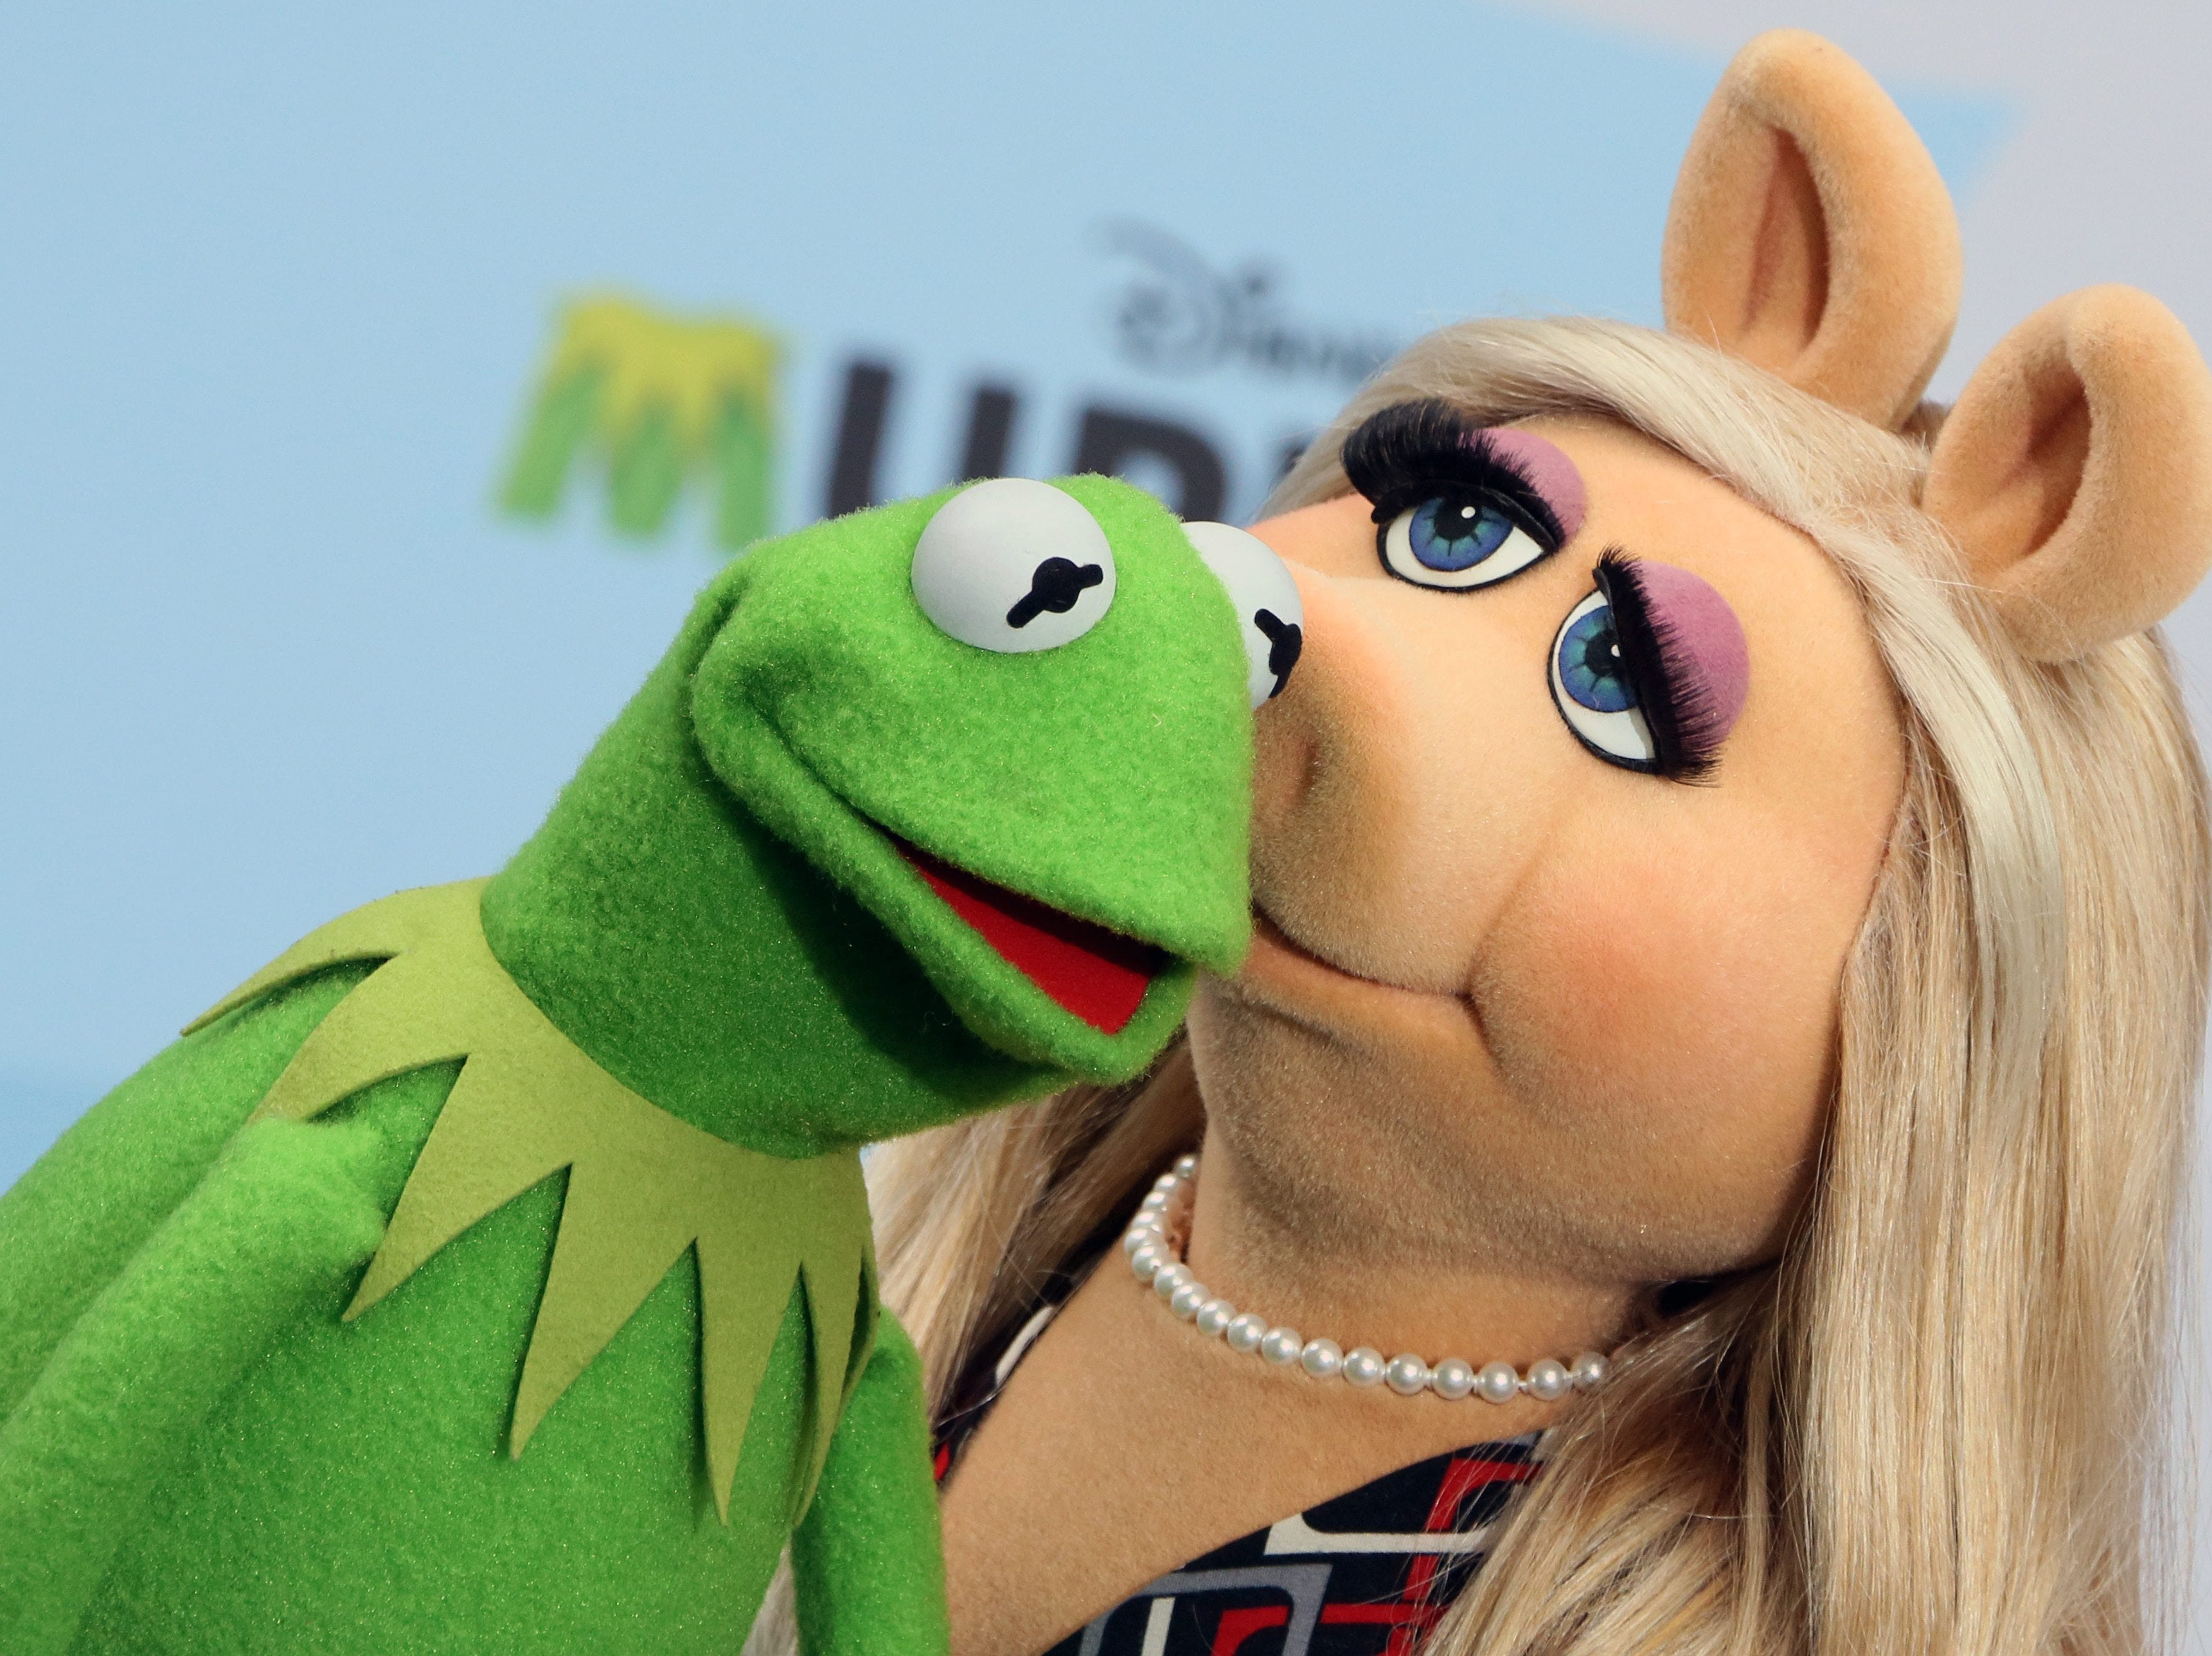 epa04872930 (FILE) A file picture dated 28 March 2014 of The Muppet Show characters Kermit the Frog (L) and Miss Piggy (R) at a photocall for the movie 'Muppets Most Wanted' at the Sony Center in Berlin, Germany. According to reports, the couple announced their split on 04 August 2015.  EPA/STEPHANIE PILICK *** Local Caption *** 51302624 ORG XMIT: ber052